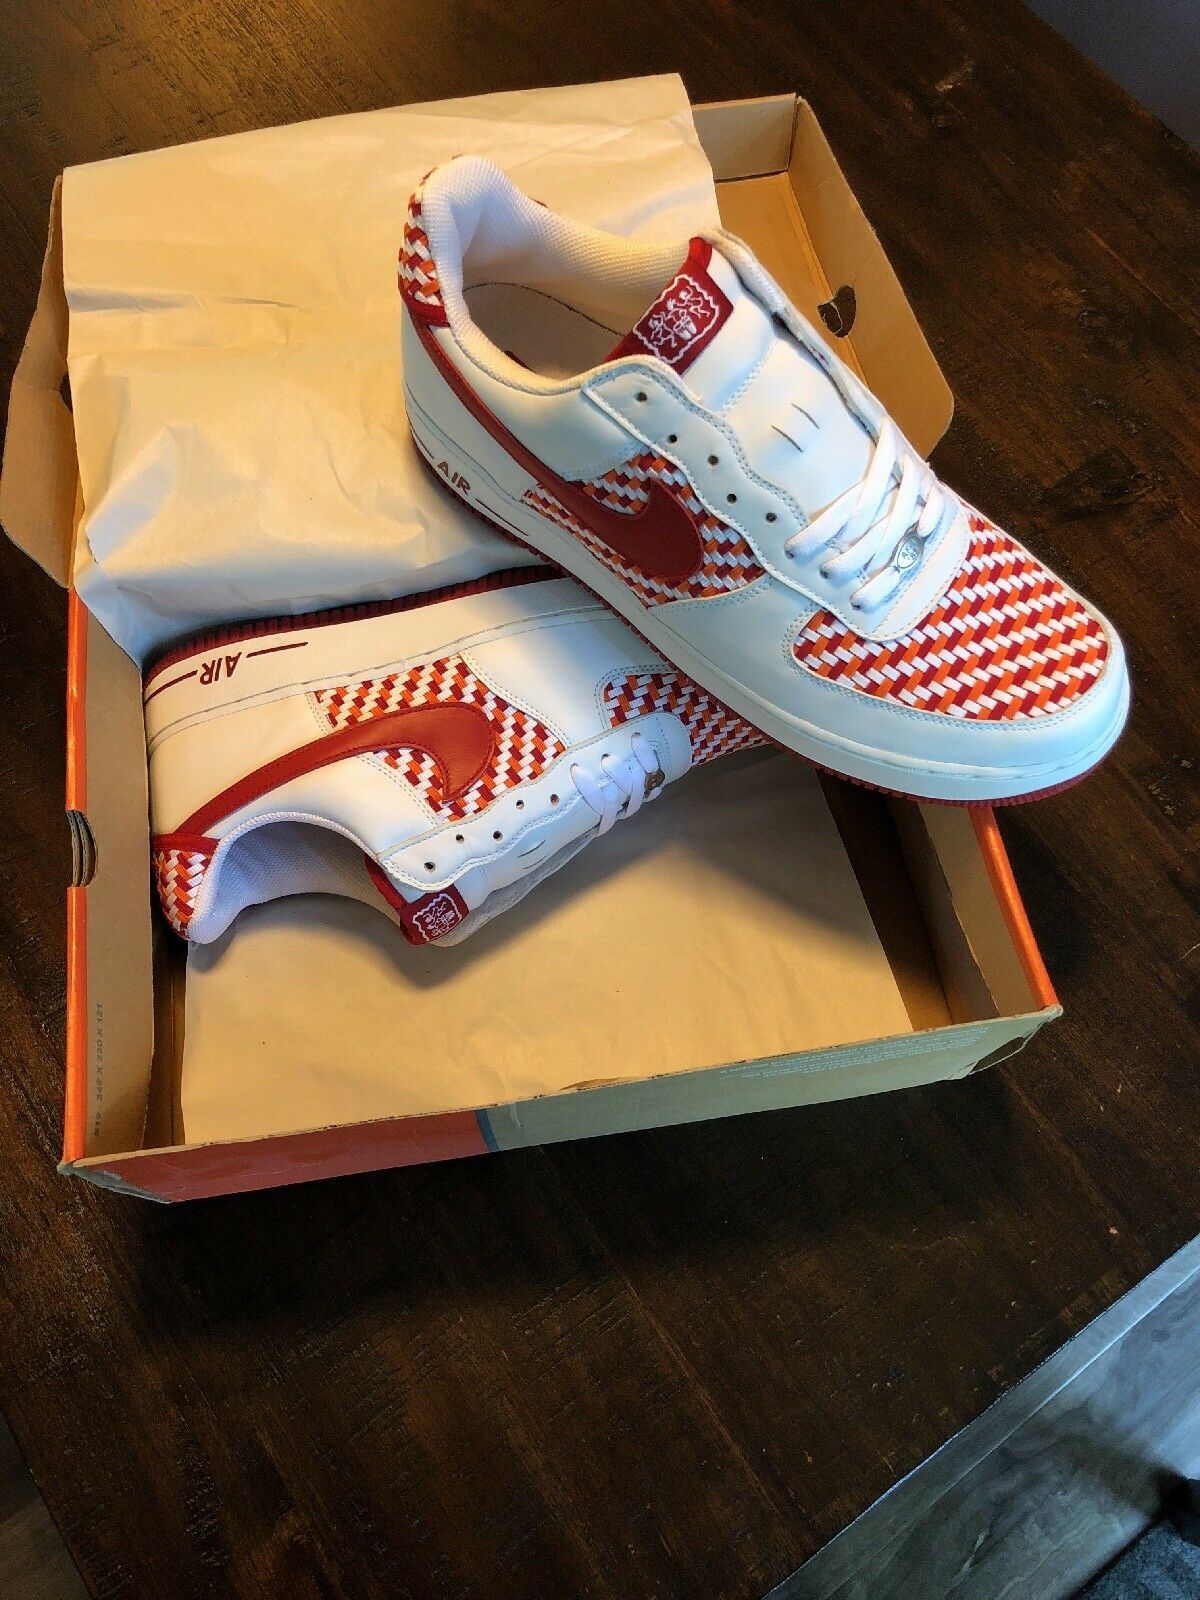 Deadstock Nike Air Force 1 West Indies Sz 13 Style red/wht/weave Seasonal price cuts, discount benefits